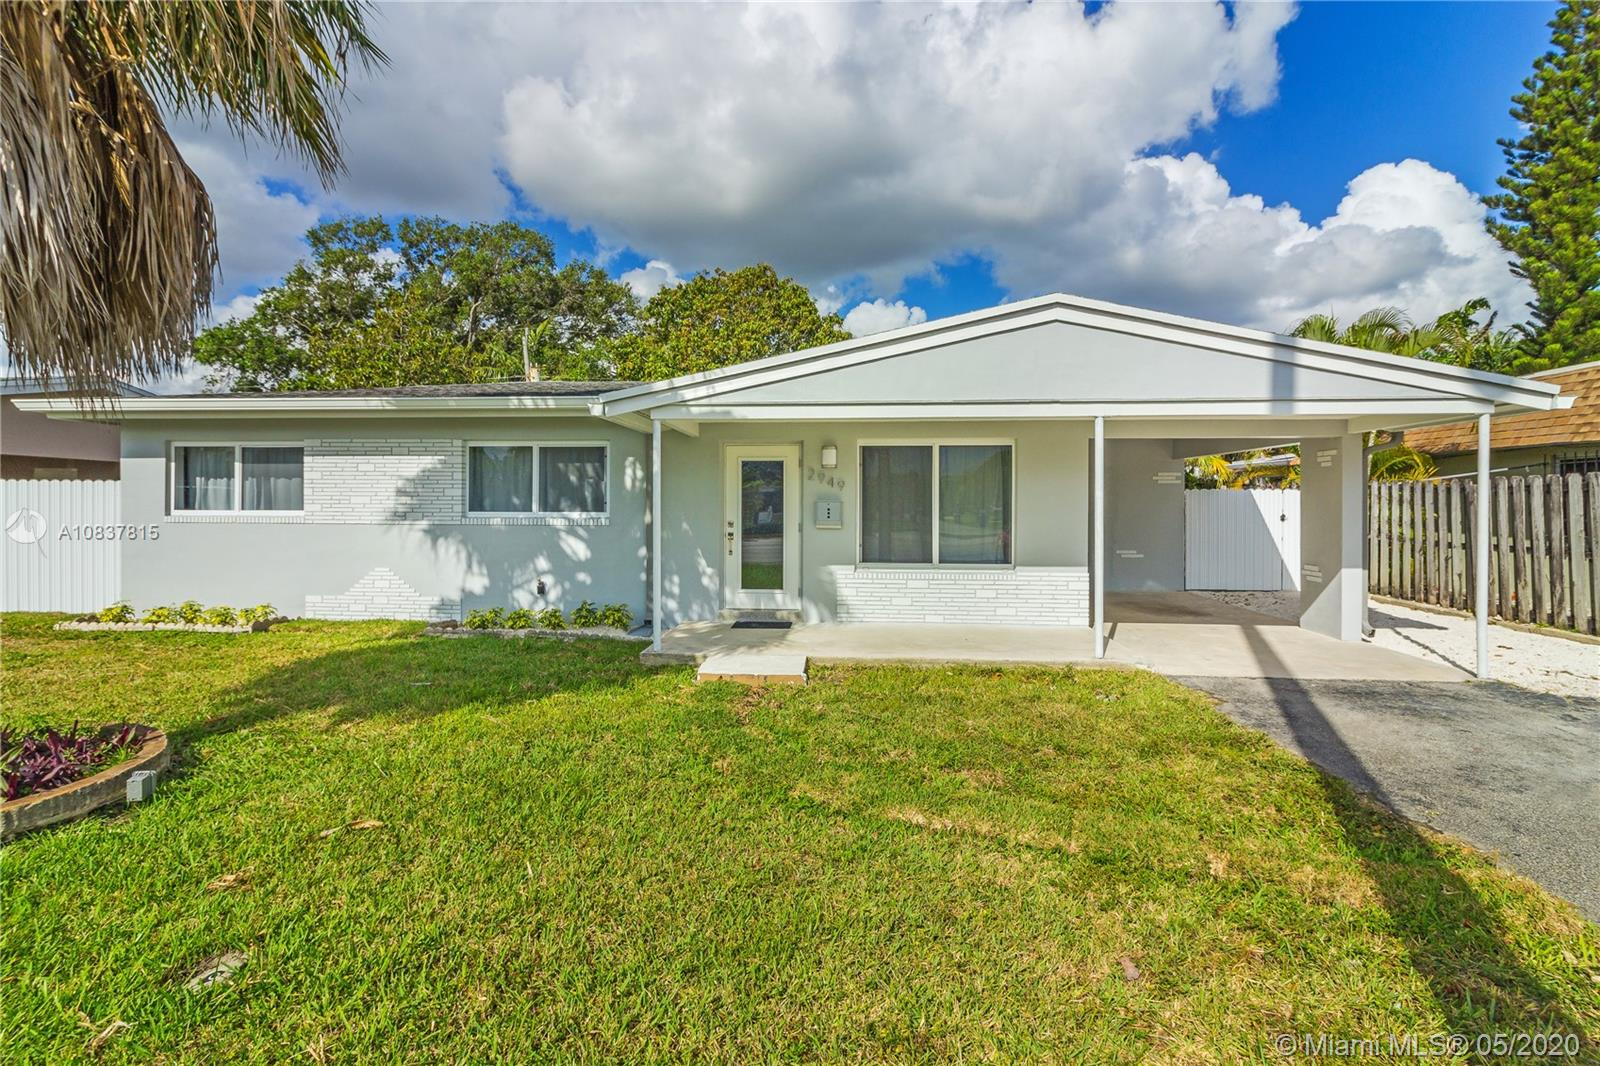 2949 NW 9th Ave, Wilton Manors, FL 33311